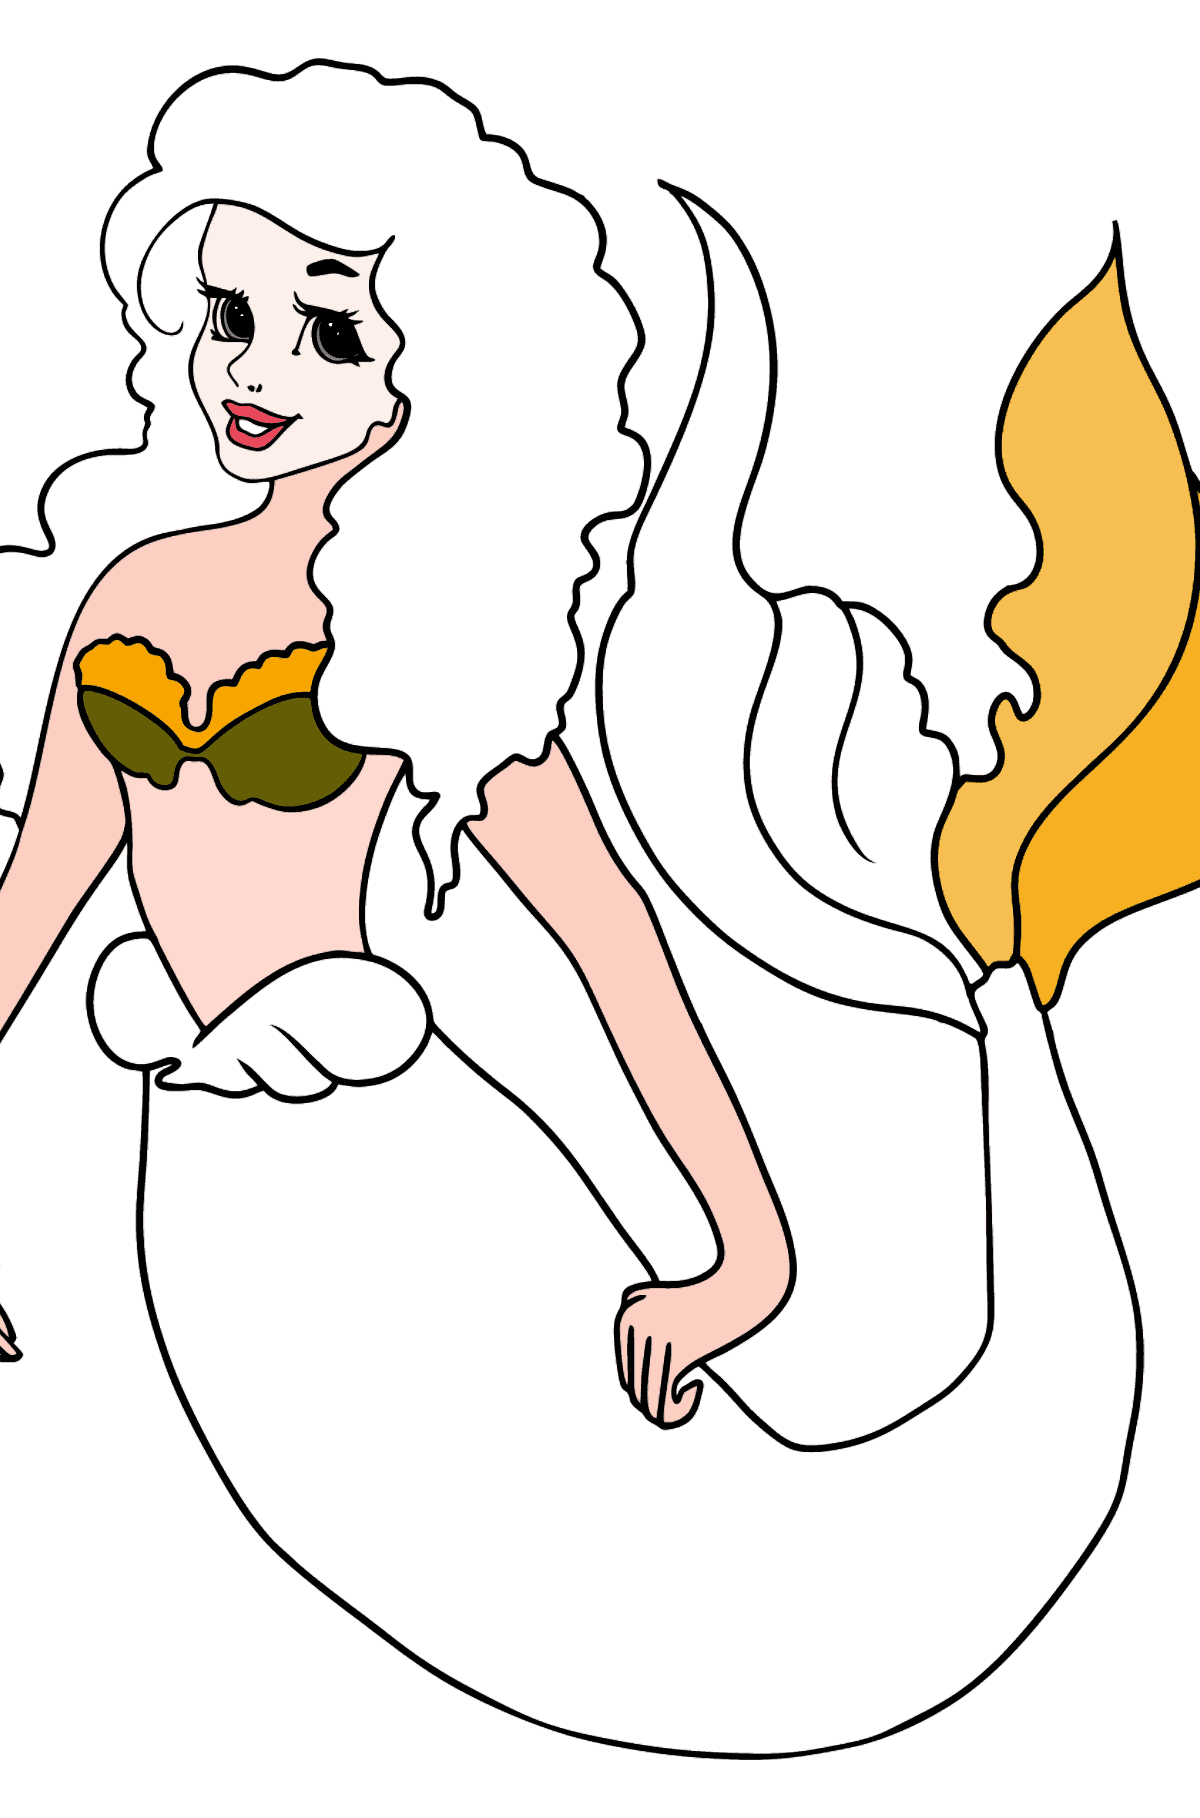 Coloring Page Mermaid with green tail - Coloring Pages for Kids